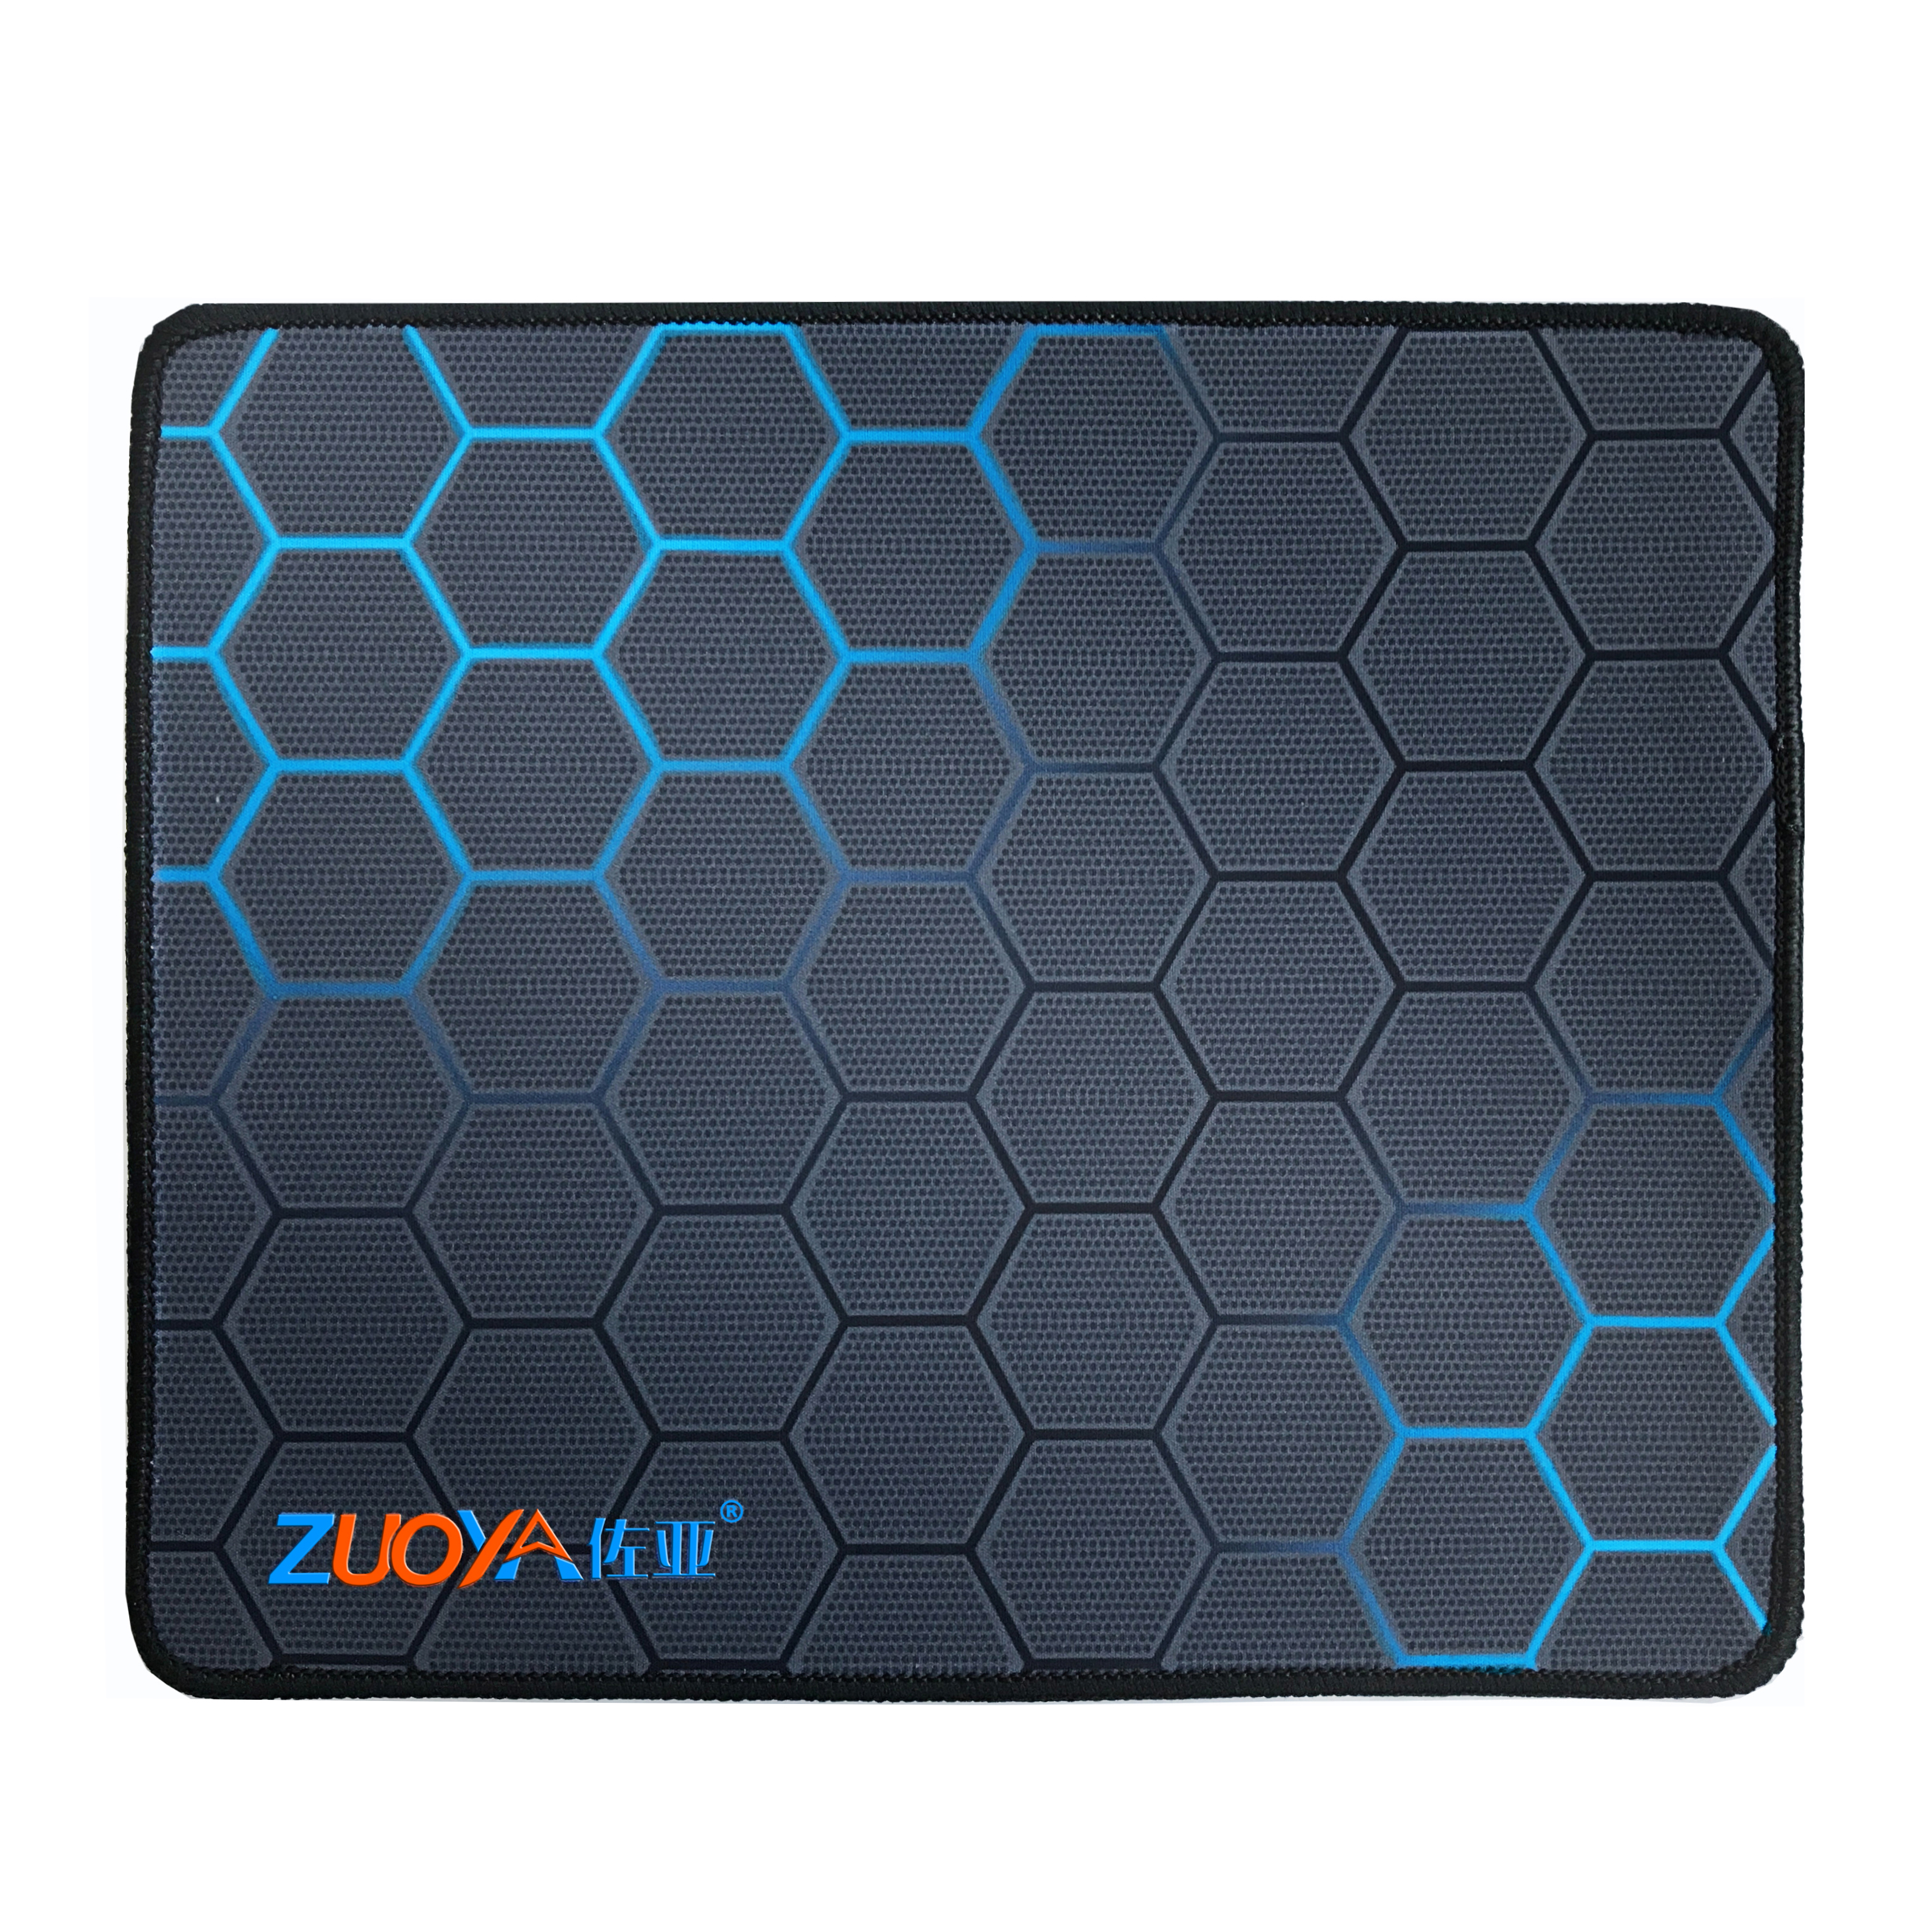 Office and Home Rubber Base Rectangular Non-Slip Rubber Mouse Pad 10 X 12 Inches Computer Mouse Pad with Seam Edges Design Name Gaming Mouse Pad